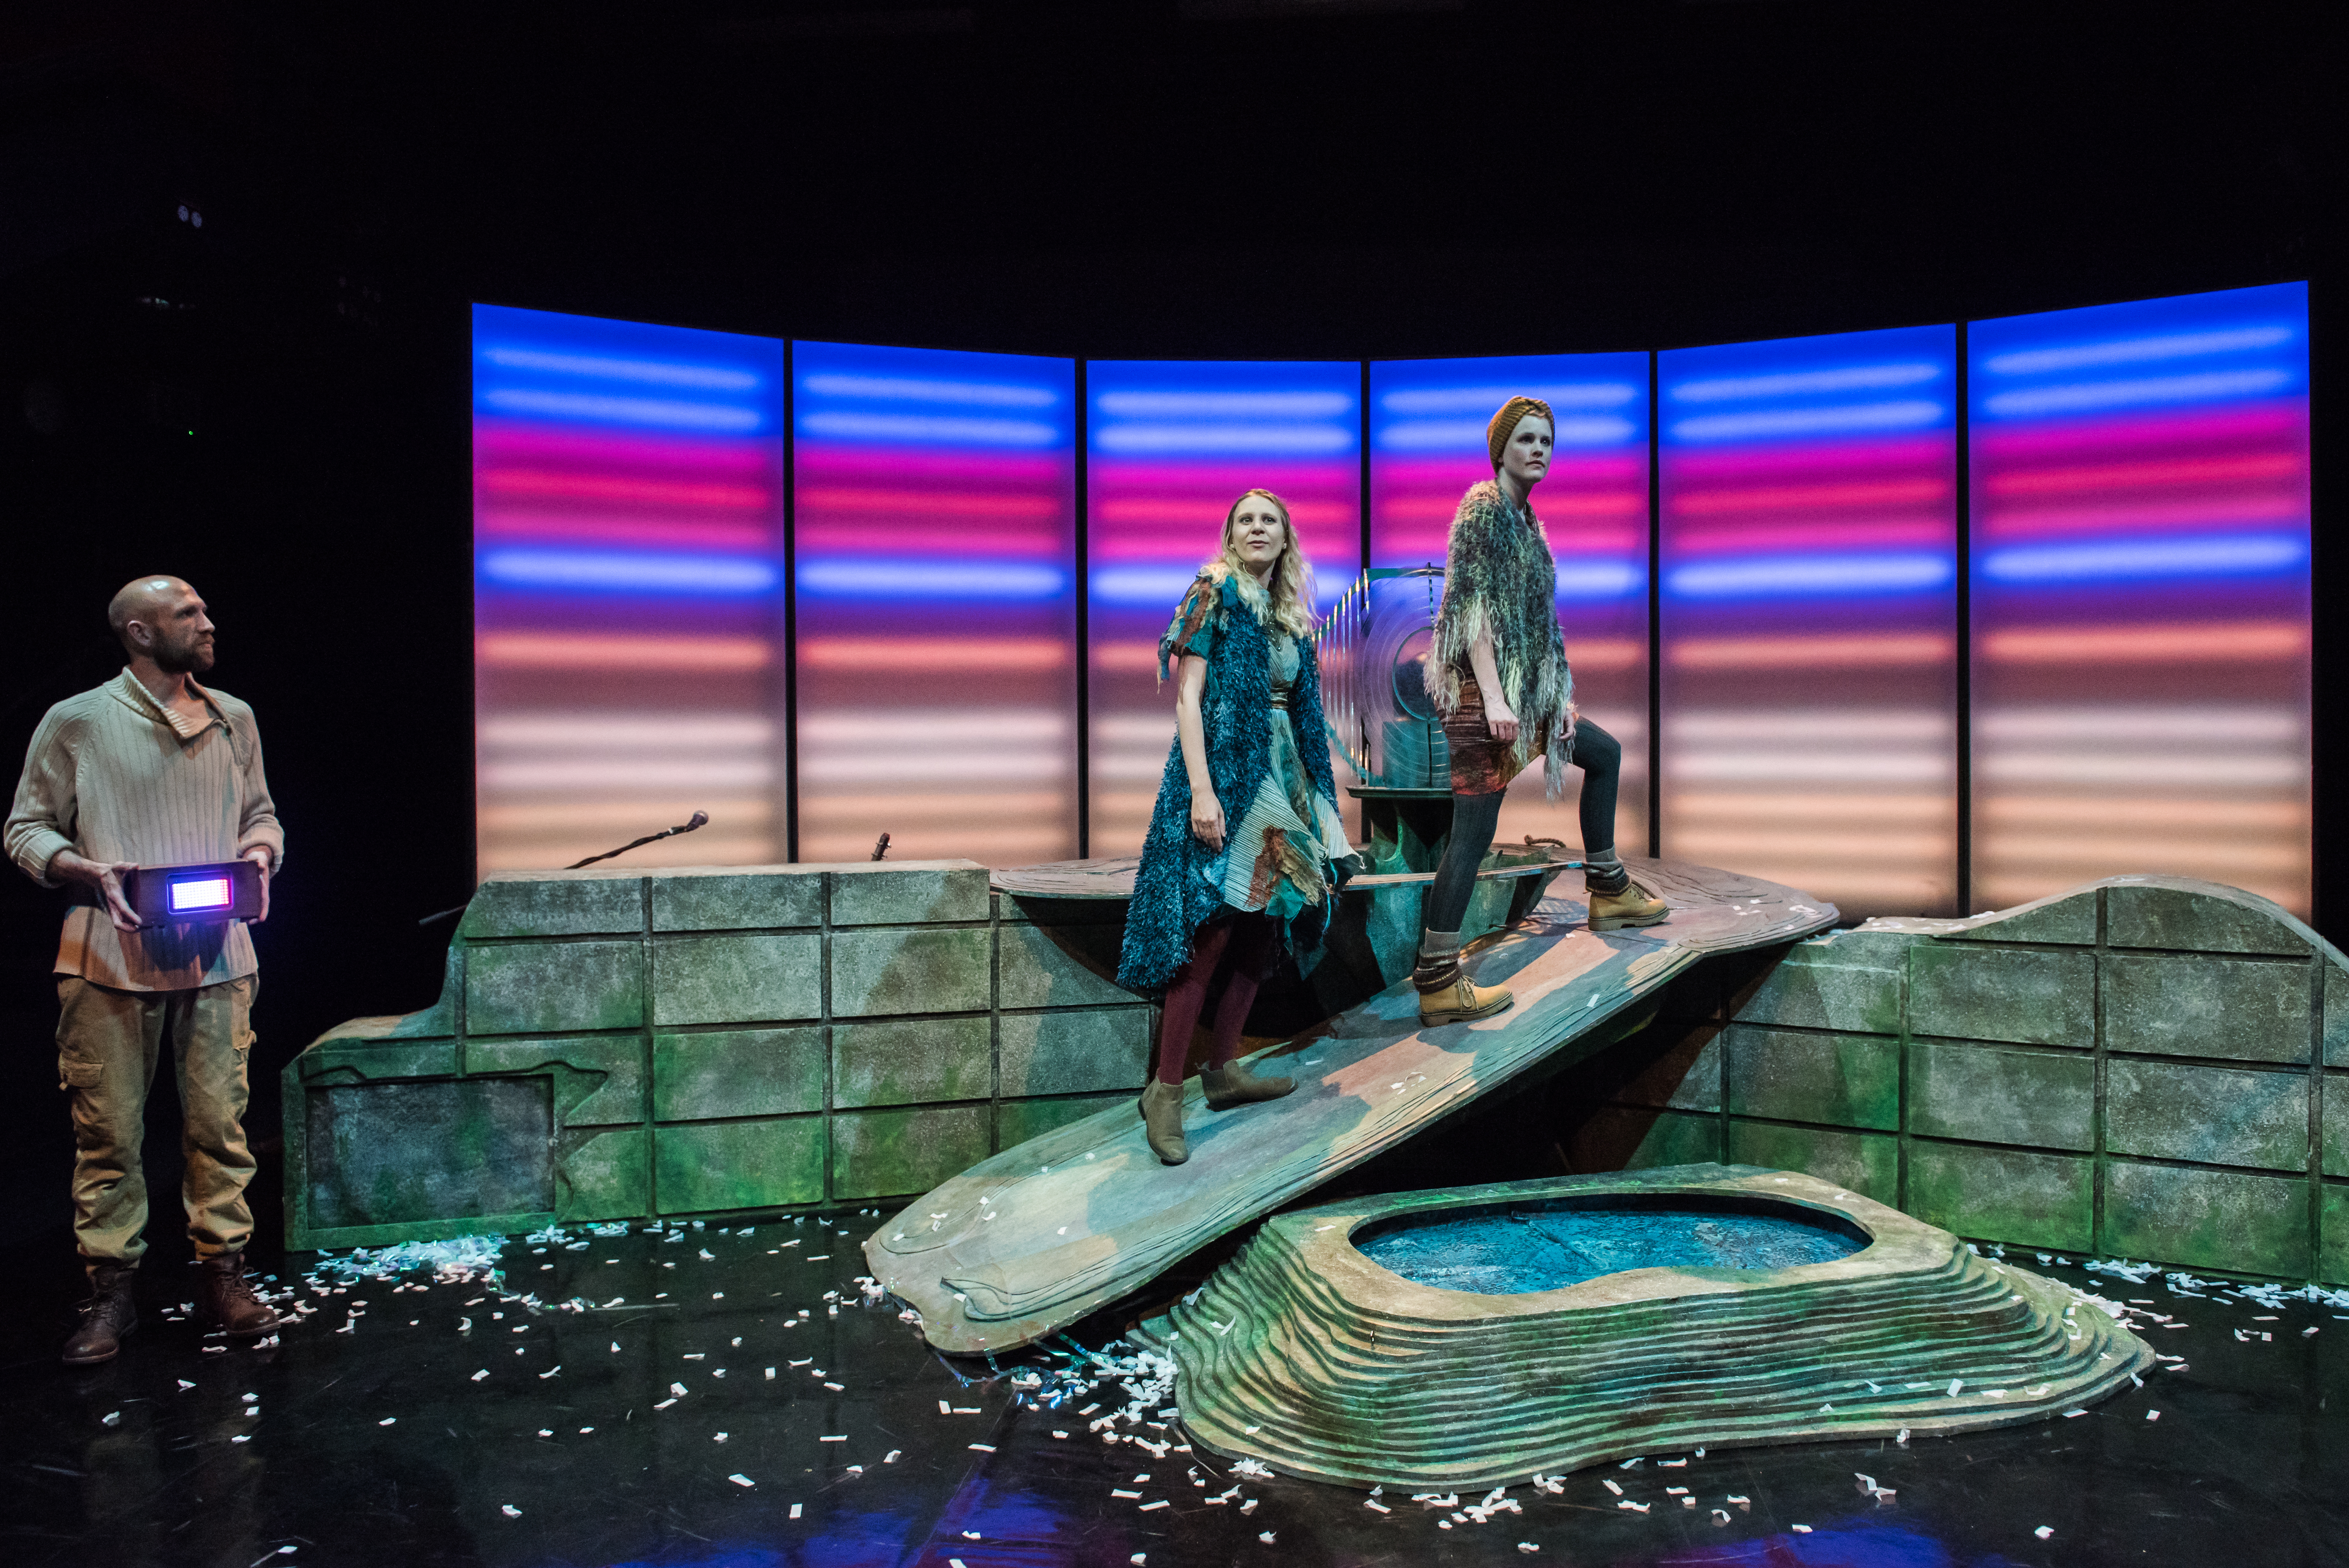 Multisensory show brings theatre experience to Scots with profound and multiple learning difficulties   Sunday Post